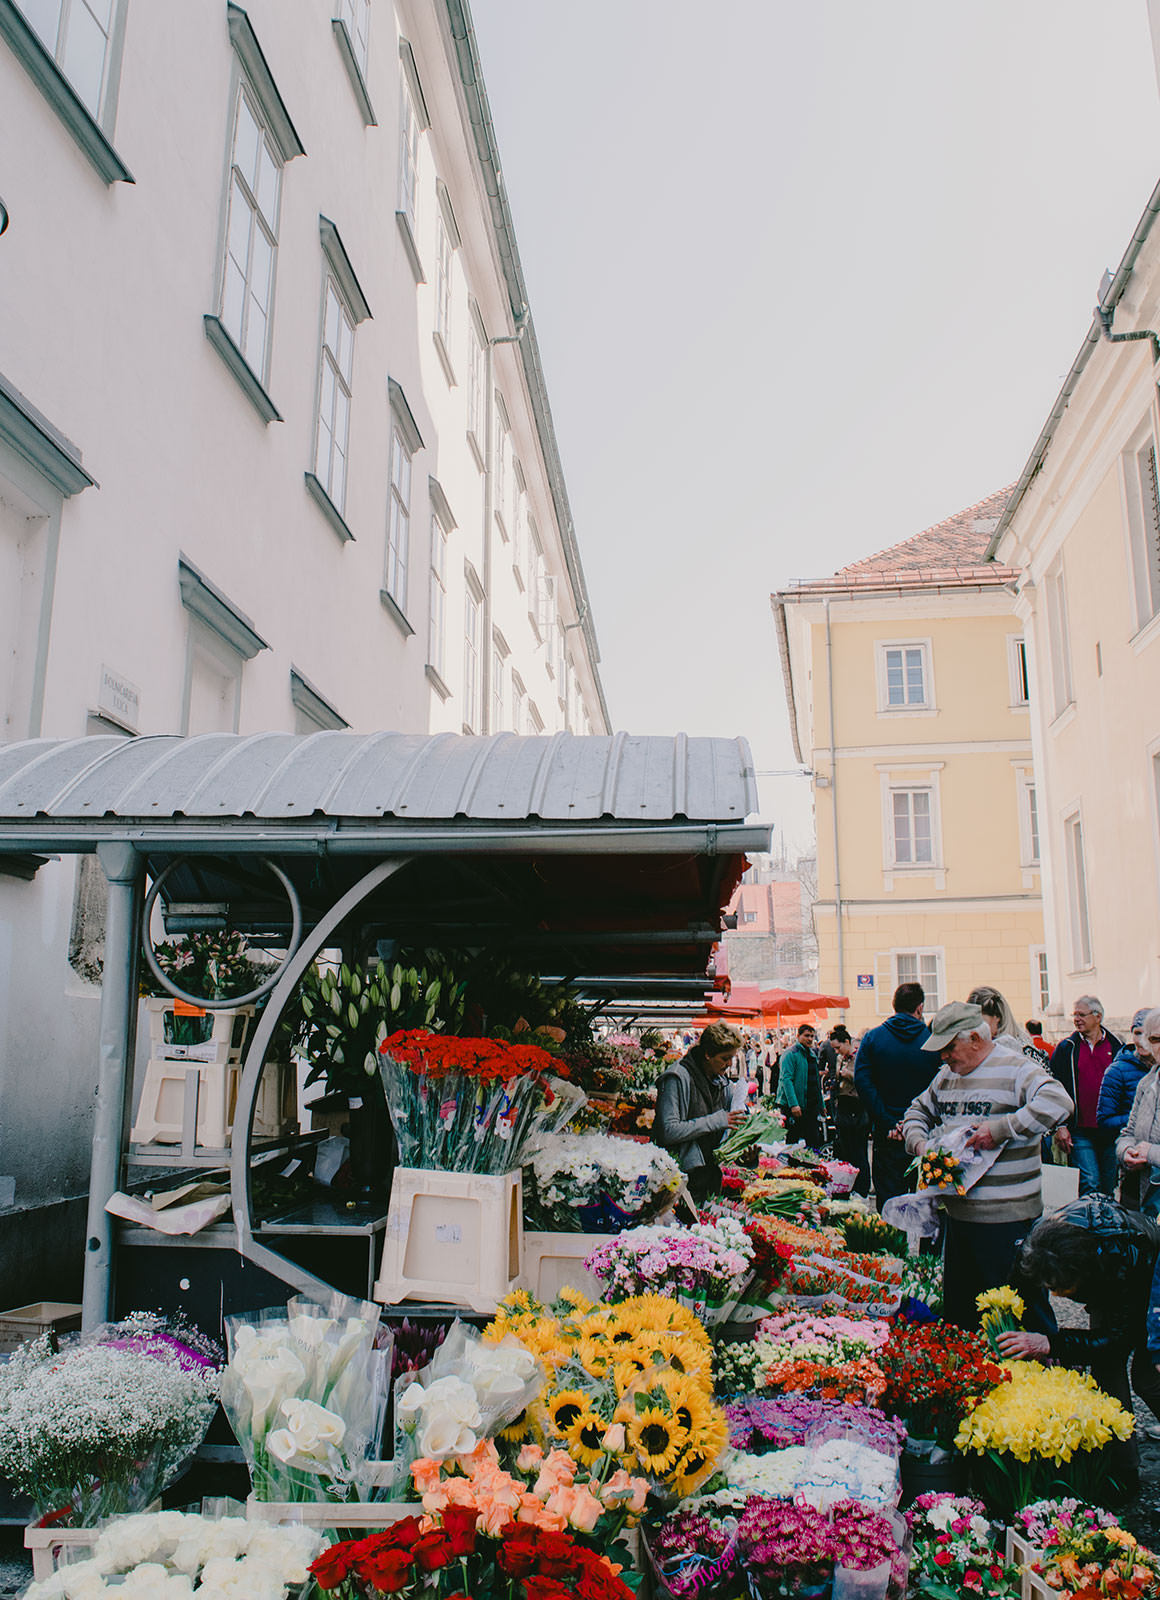 9 Reasons Locals call Ljubljana their \'little Paris\' | Jayde Archives